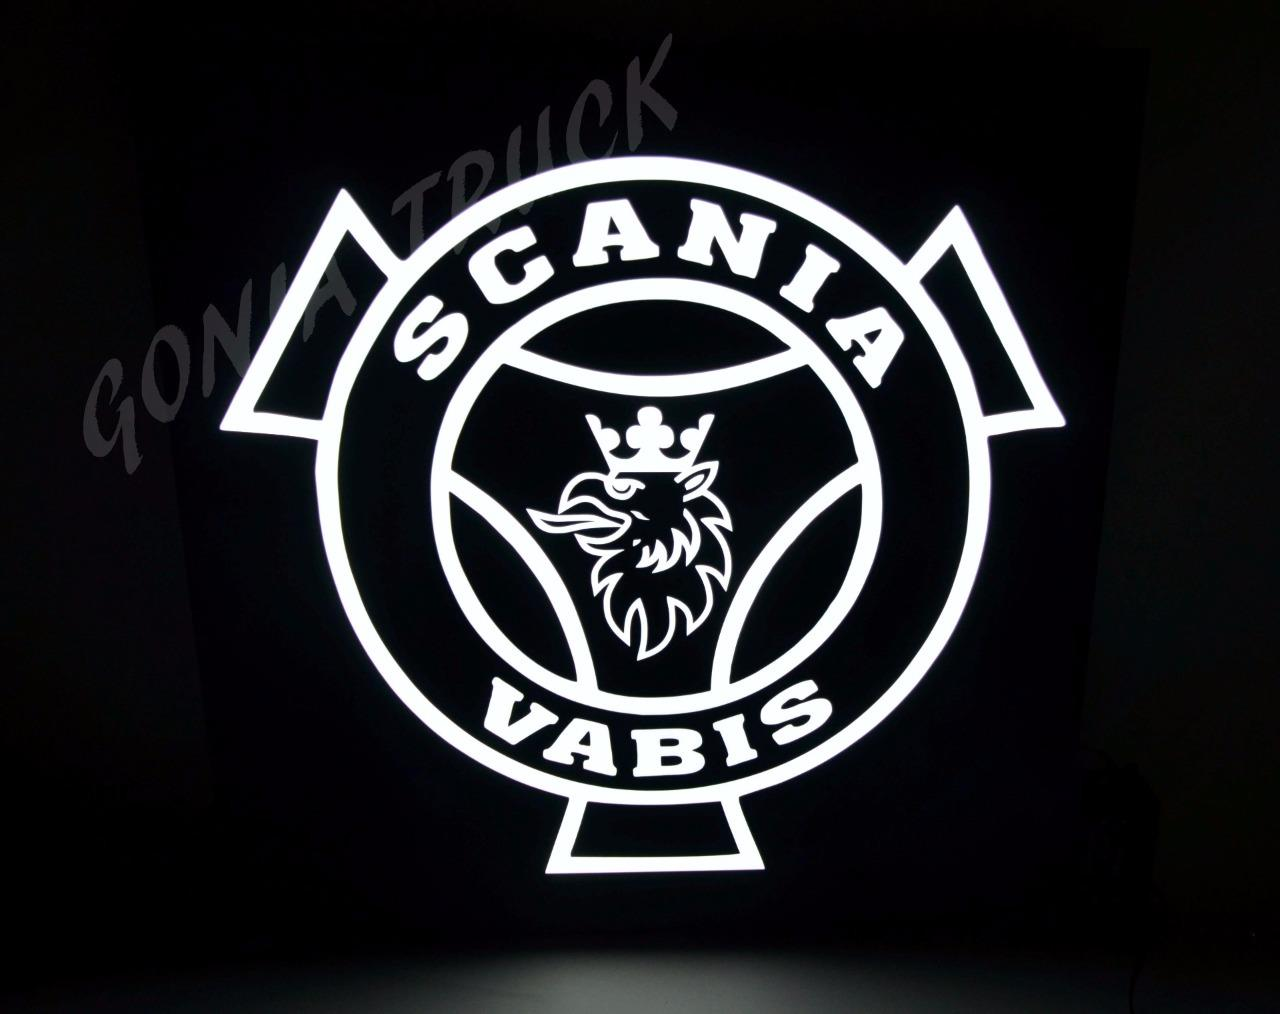 Leds Logo Quot Scania Vabis Quot With The Dimmer Switch And